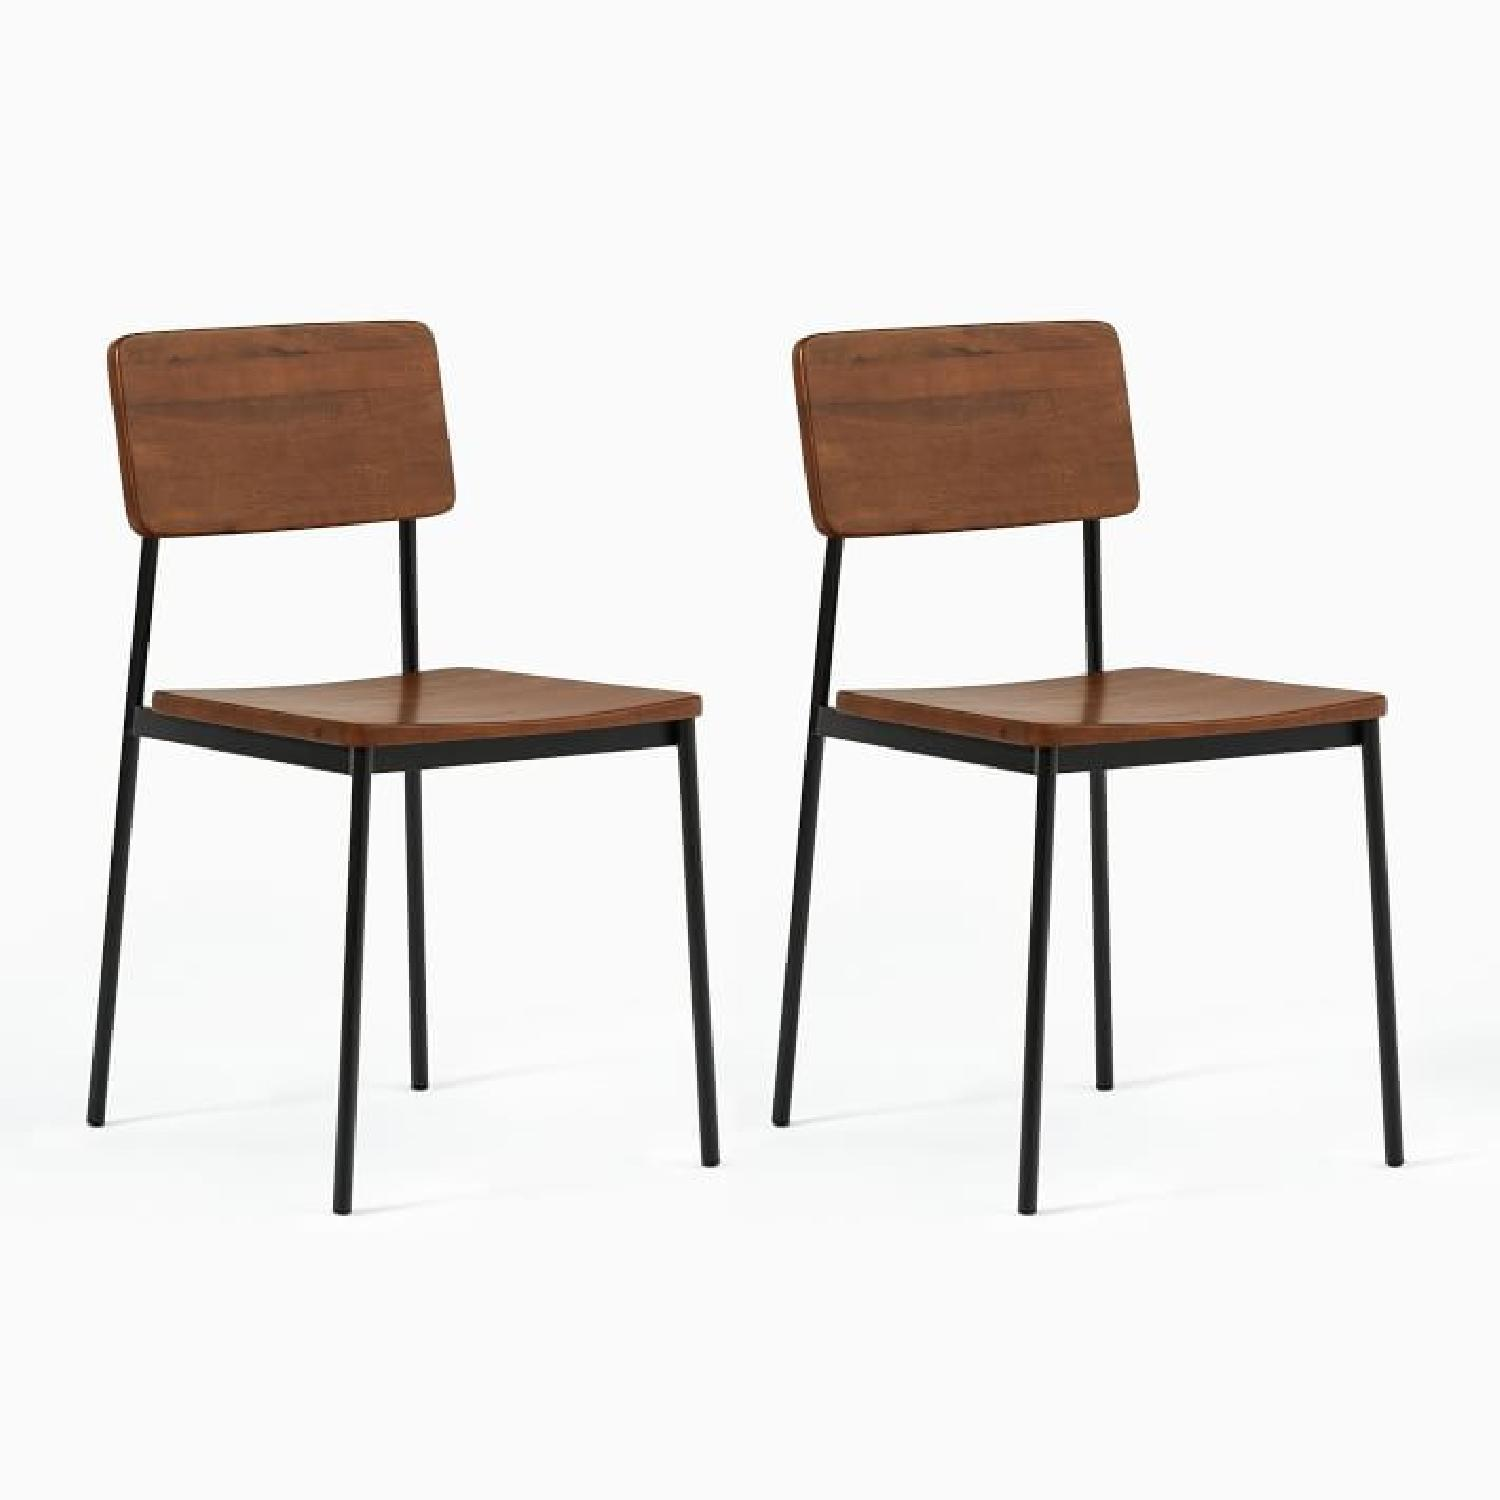 West Elm Augusta Rustic Dining Chairs (Set of 2) - image-5